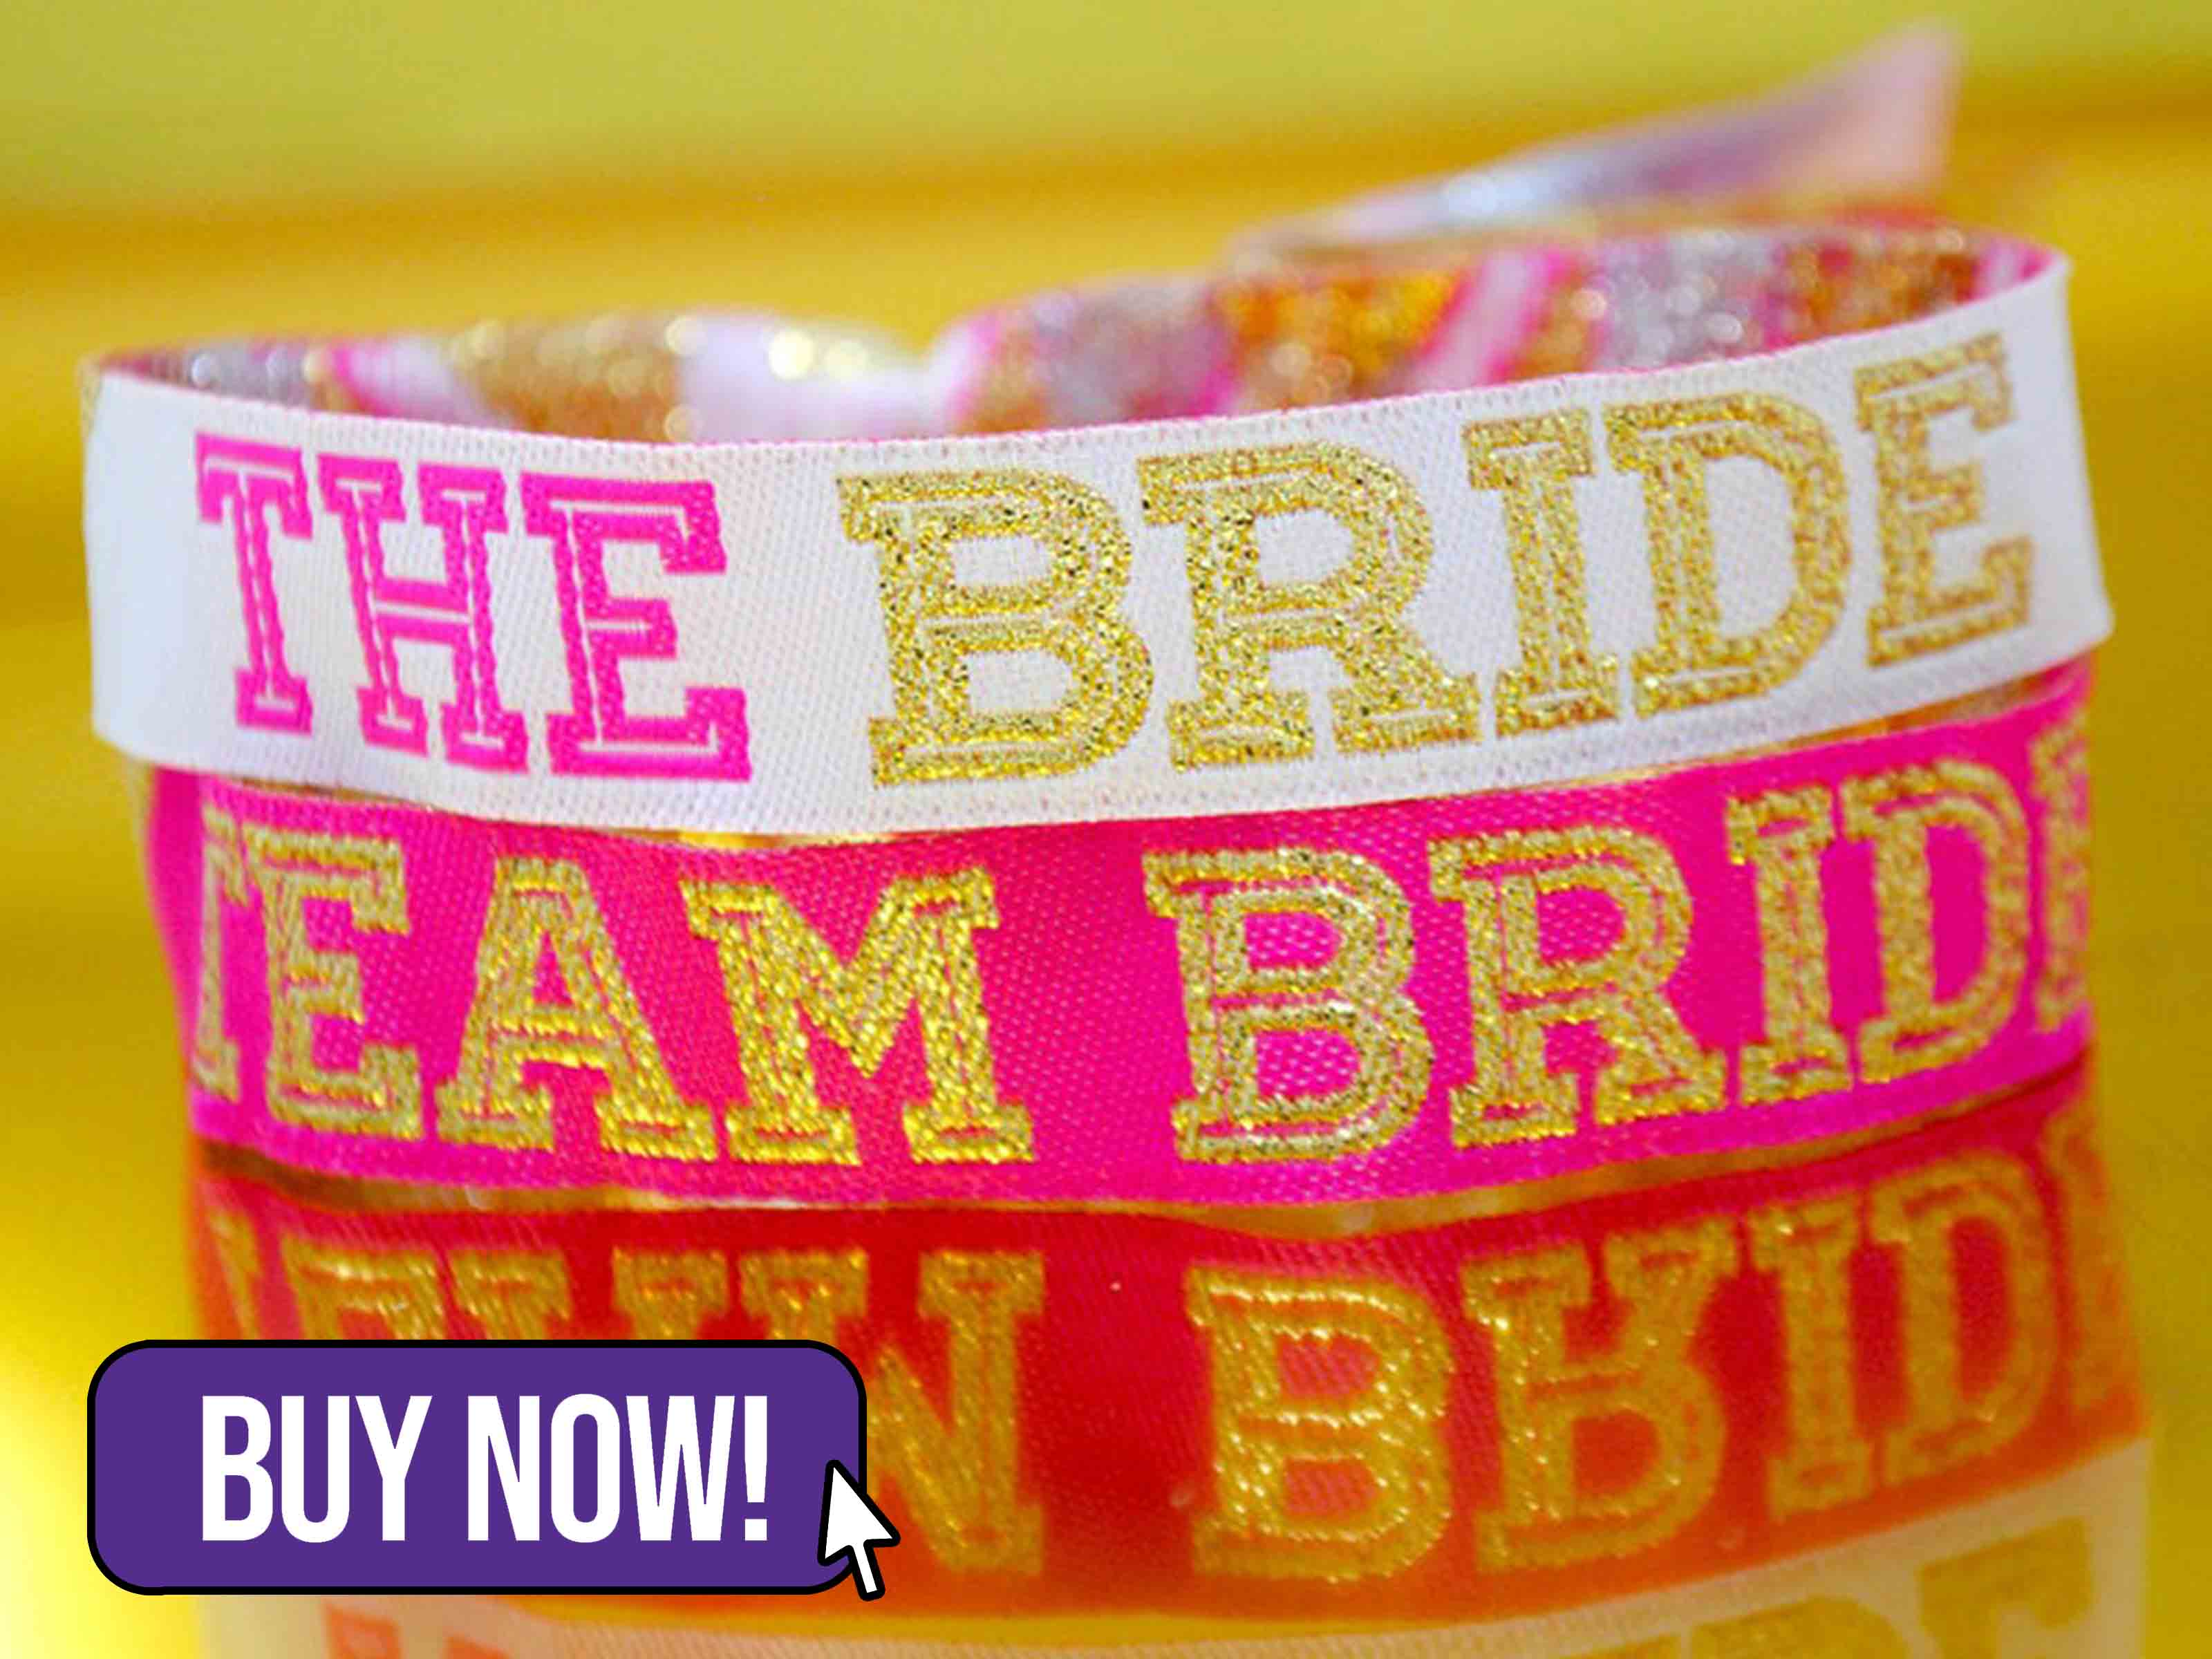 Team Bride 'Cheerleader' Hen Party Wristbands - WedfestWeddings